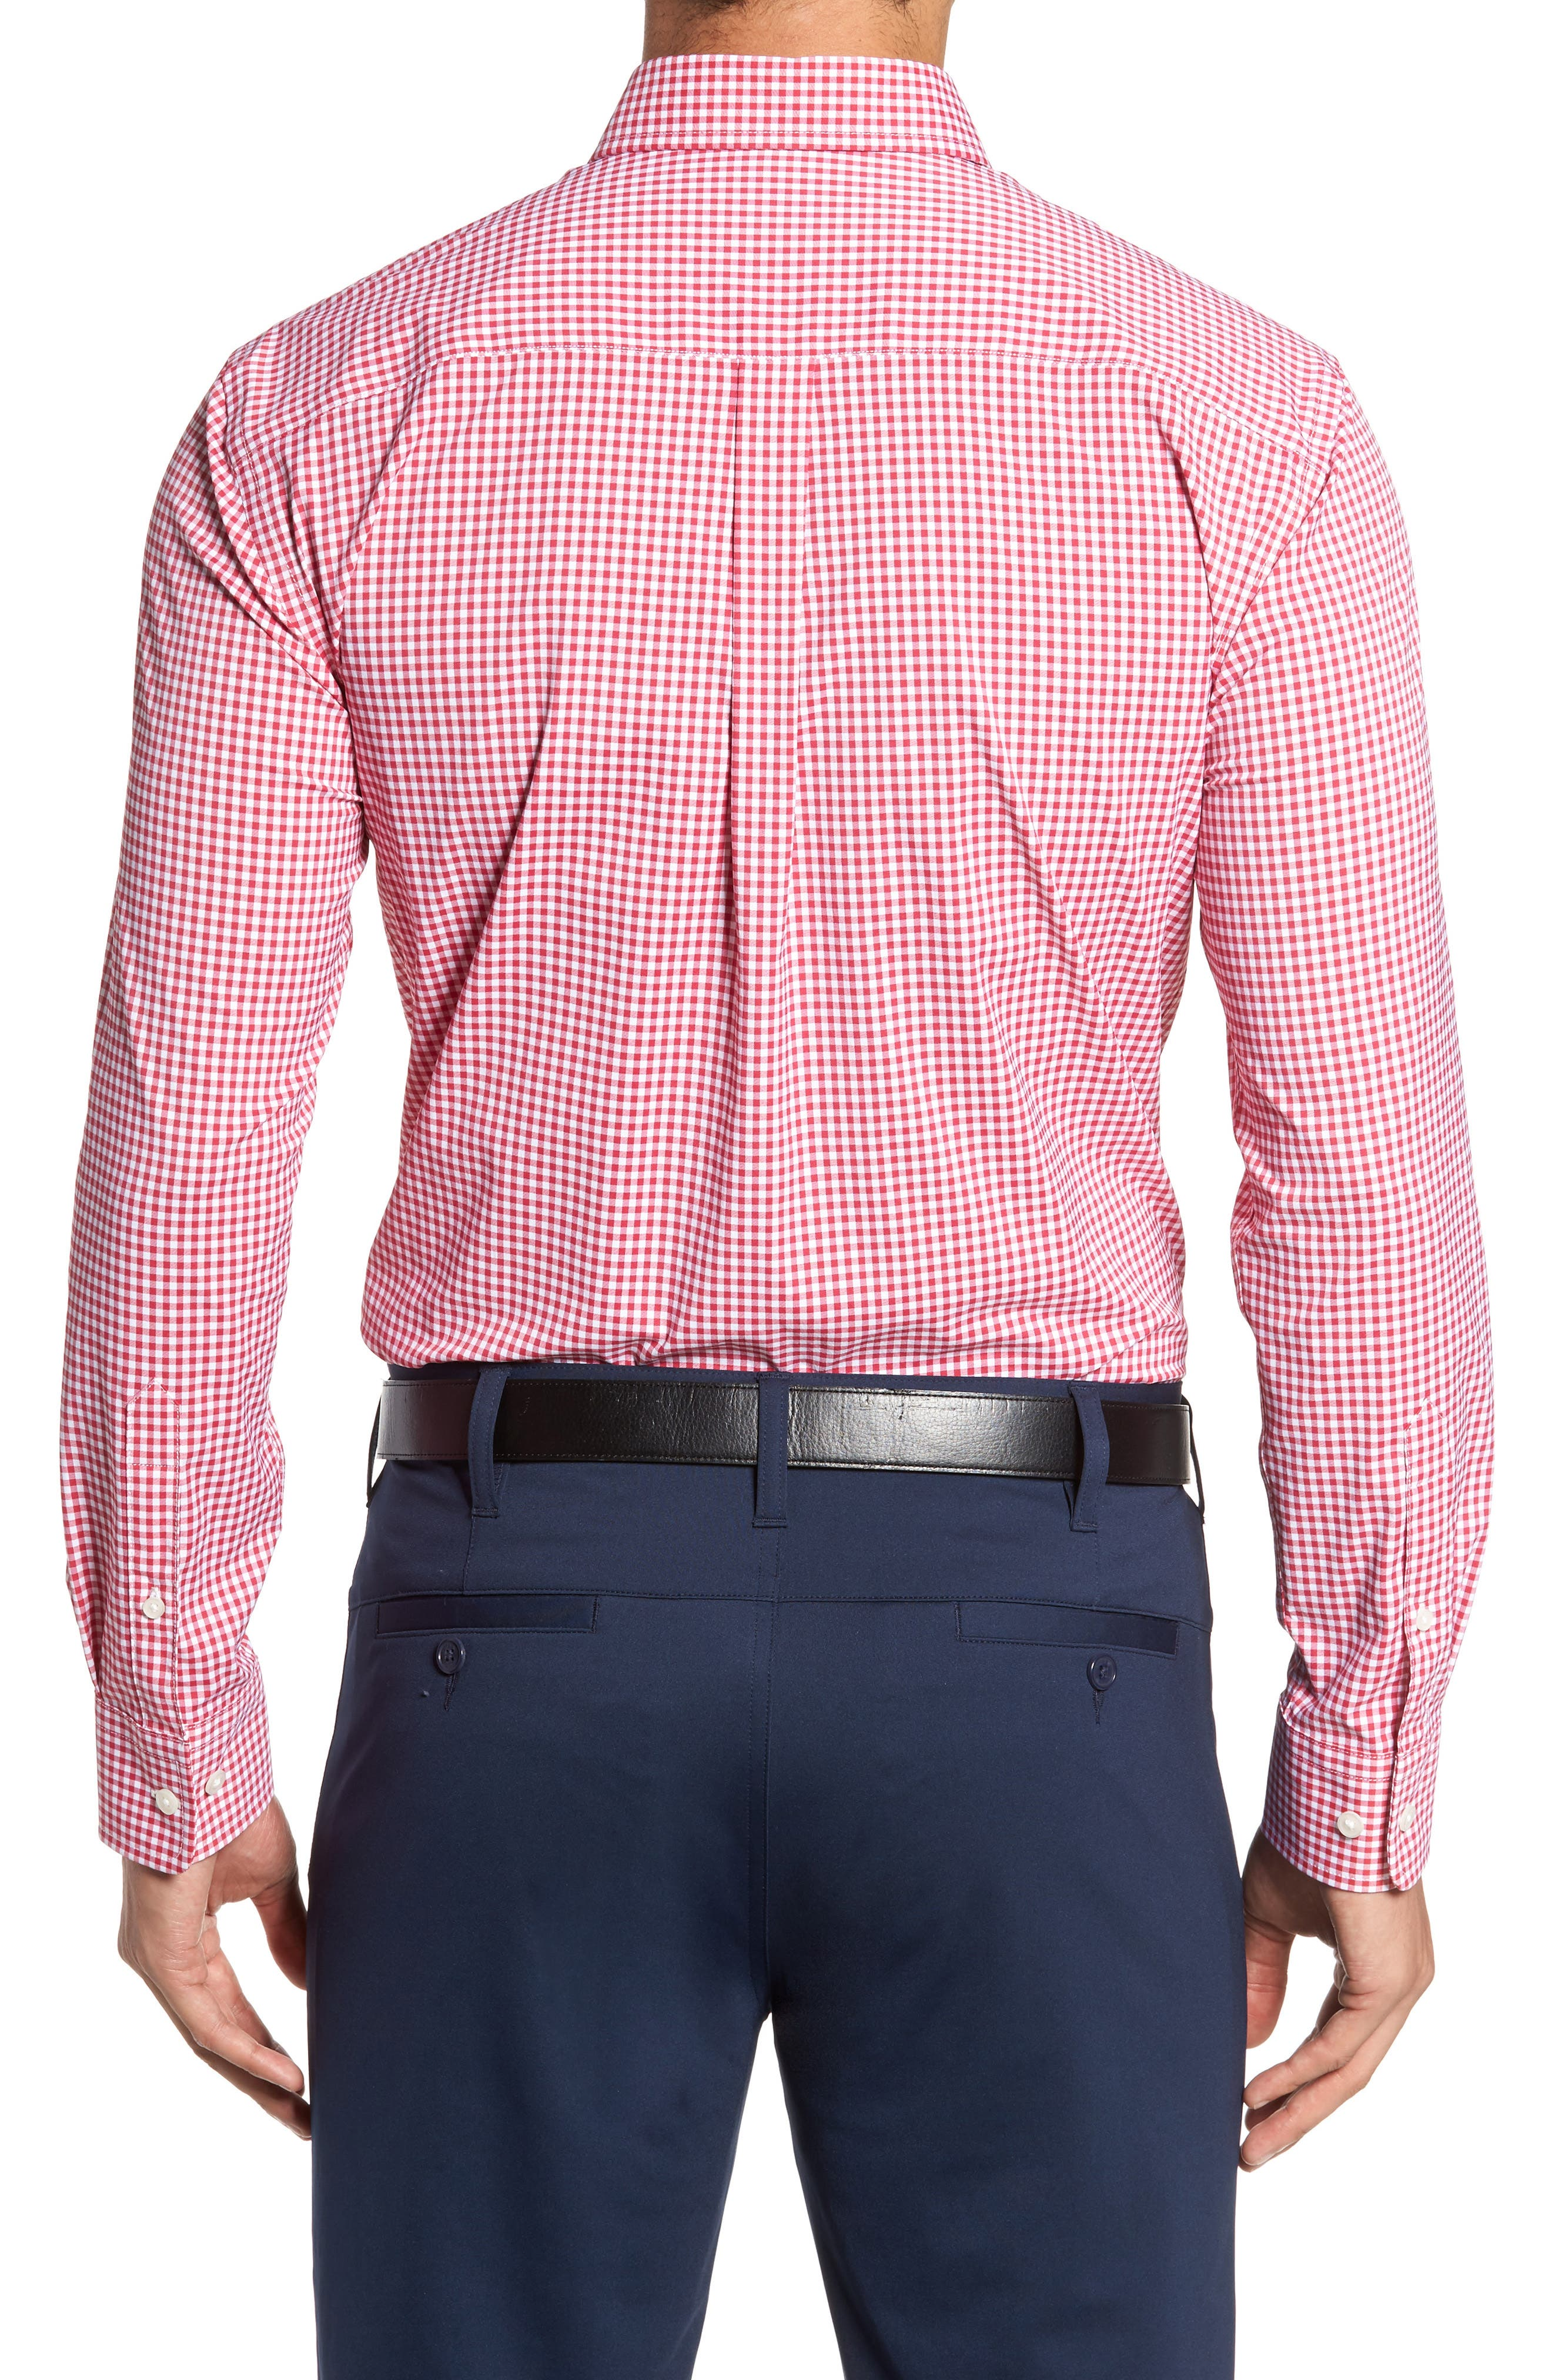 Ramsey Easy Care Gingham Sport Shirt,                             Alternate thumbnail 2, color,                             Pompei Pink